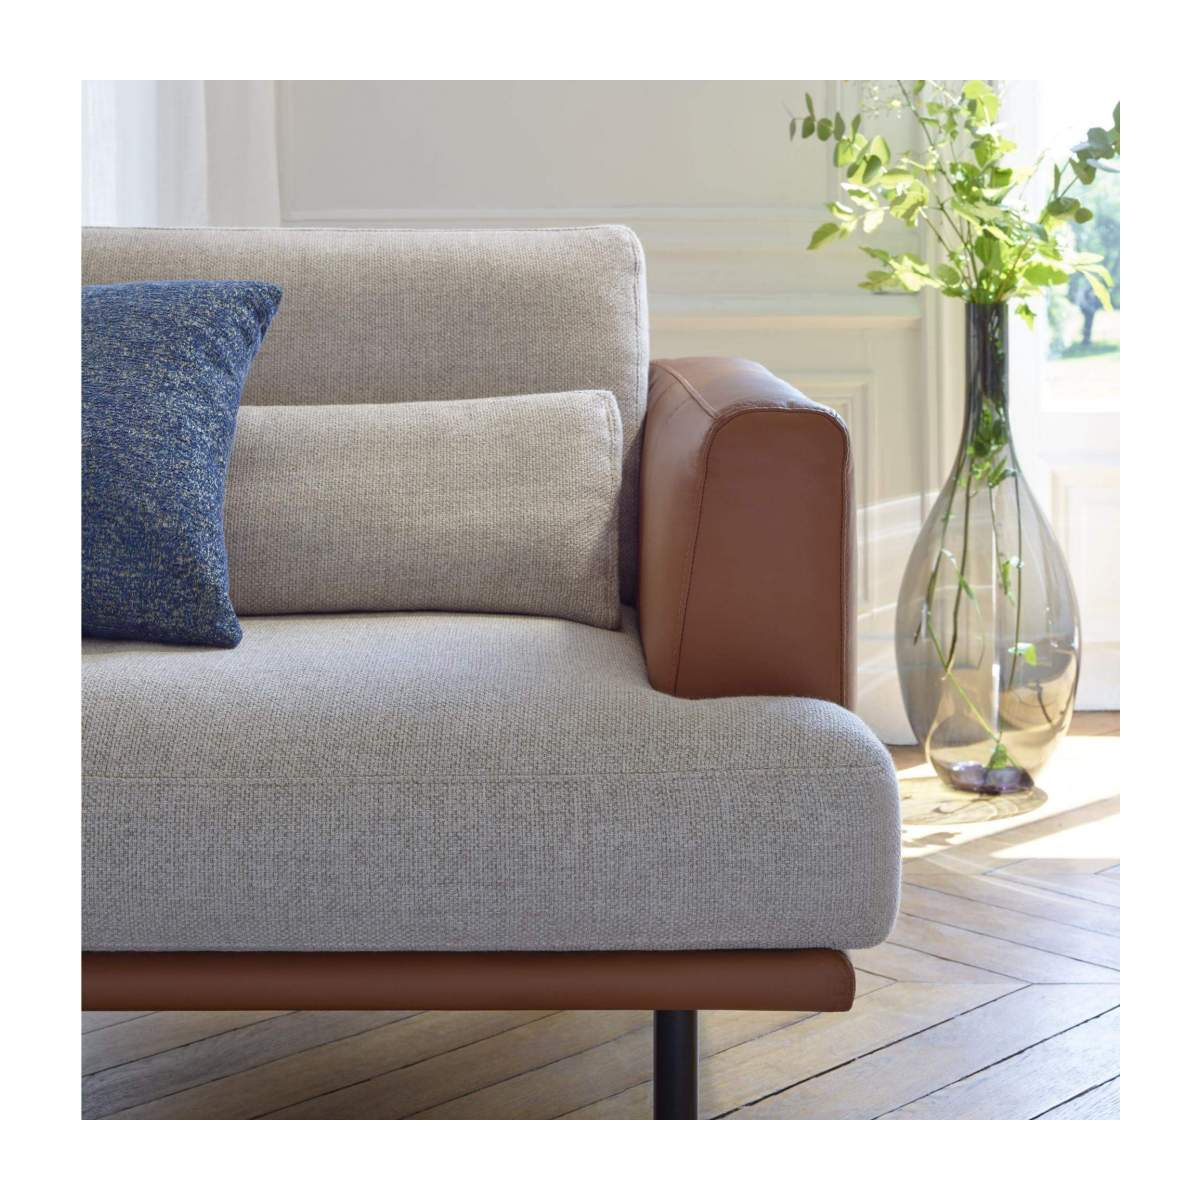 3 seater sofa in Super Velvet fabric, petrol blue with base in brown leather n°6